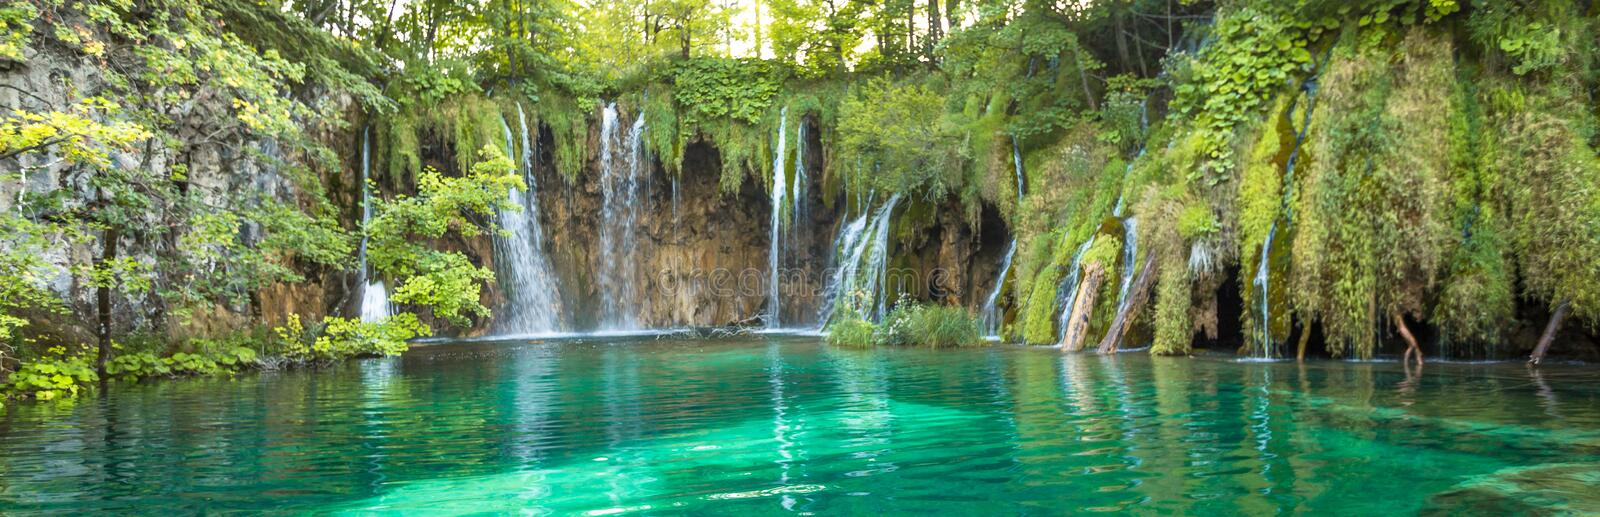 Plitvice Lakes, Croatia Waterfall. Amazing Place. royalty free stock images